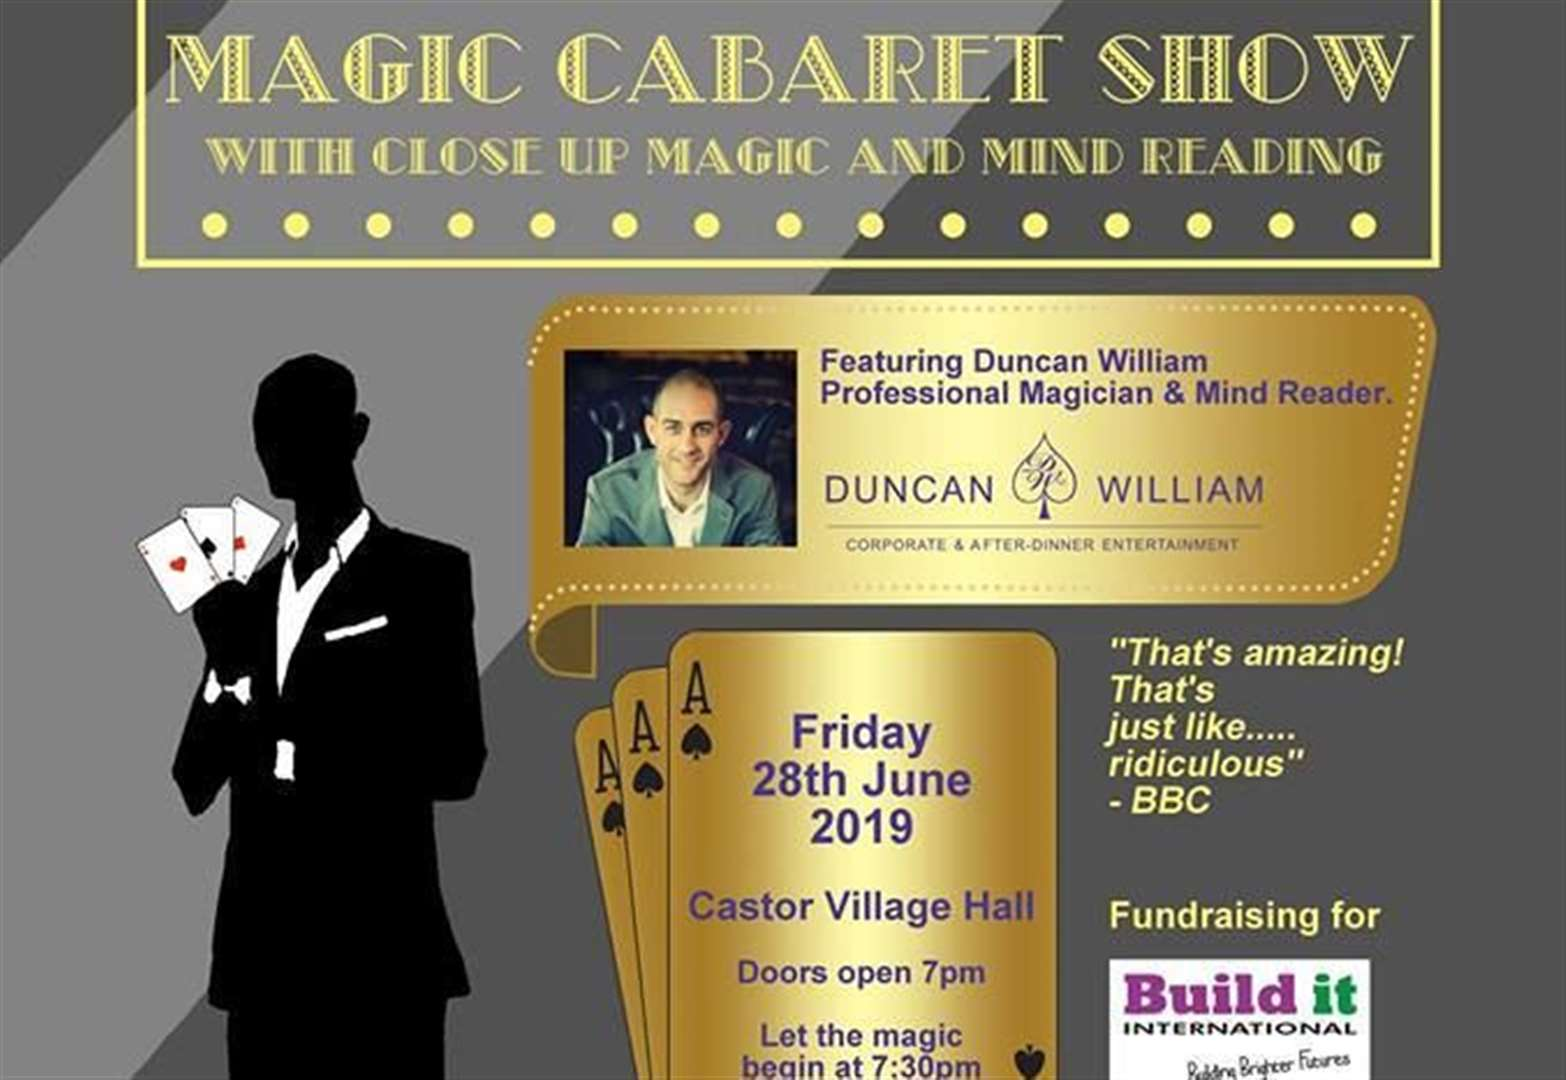 Mind-reading and magic show will raise money for skills training